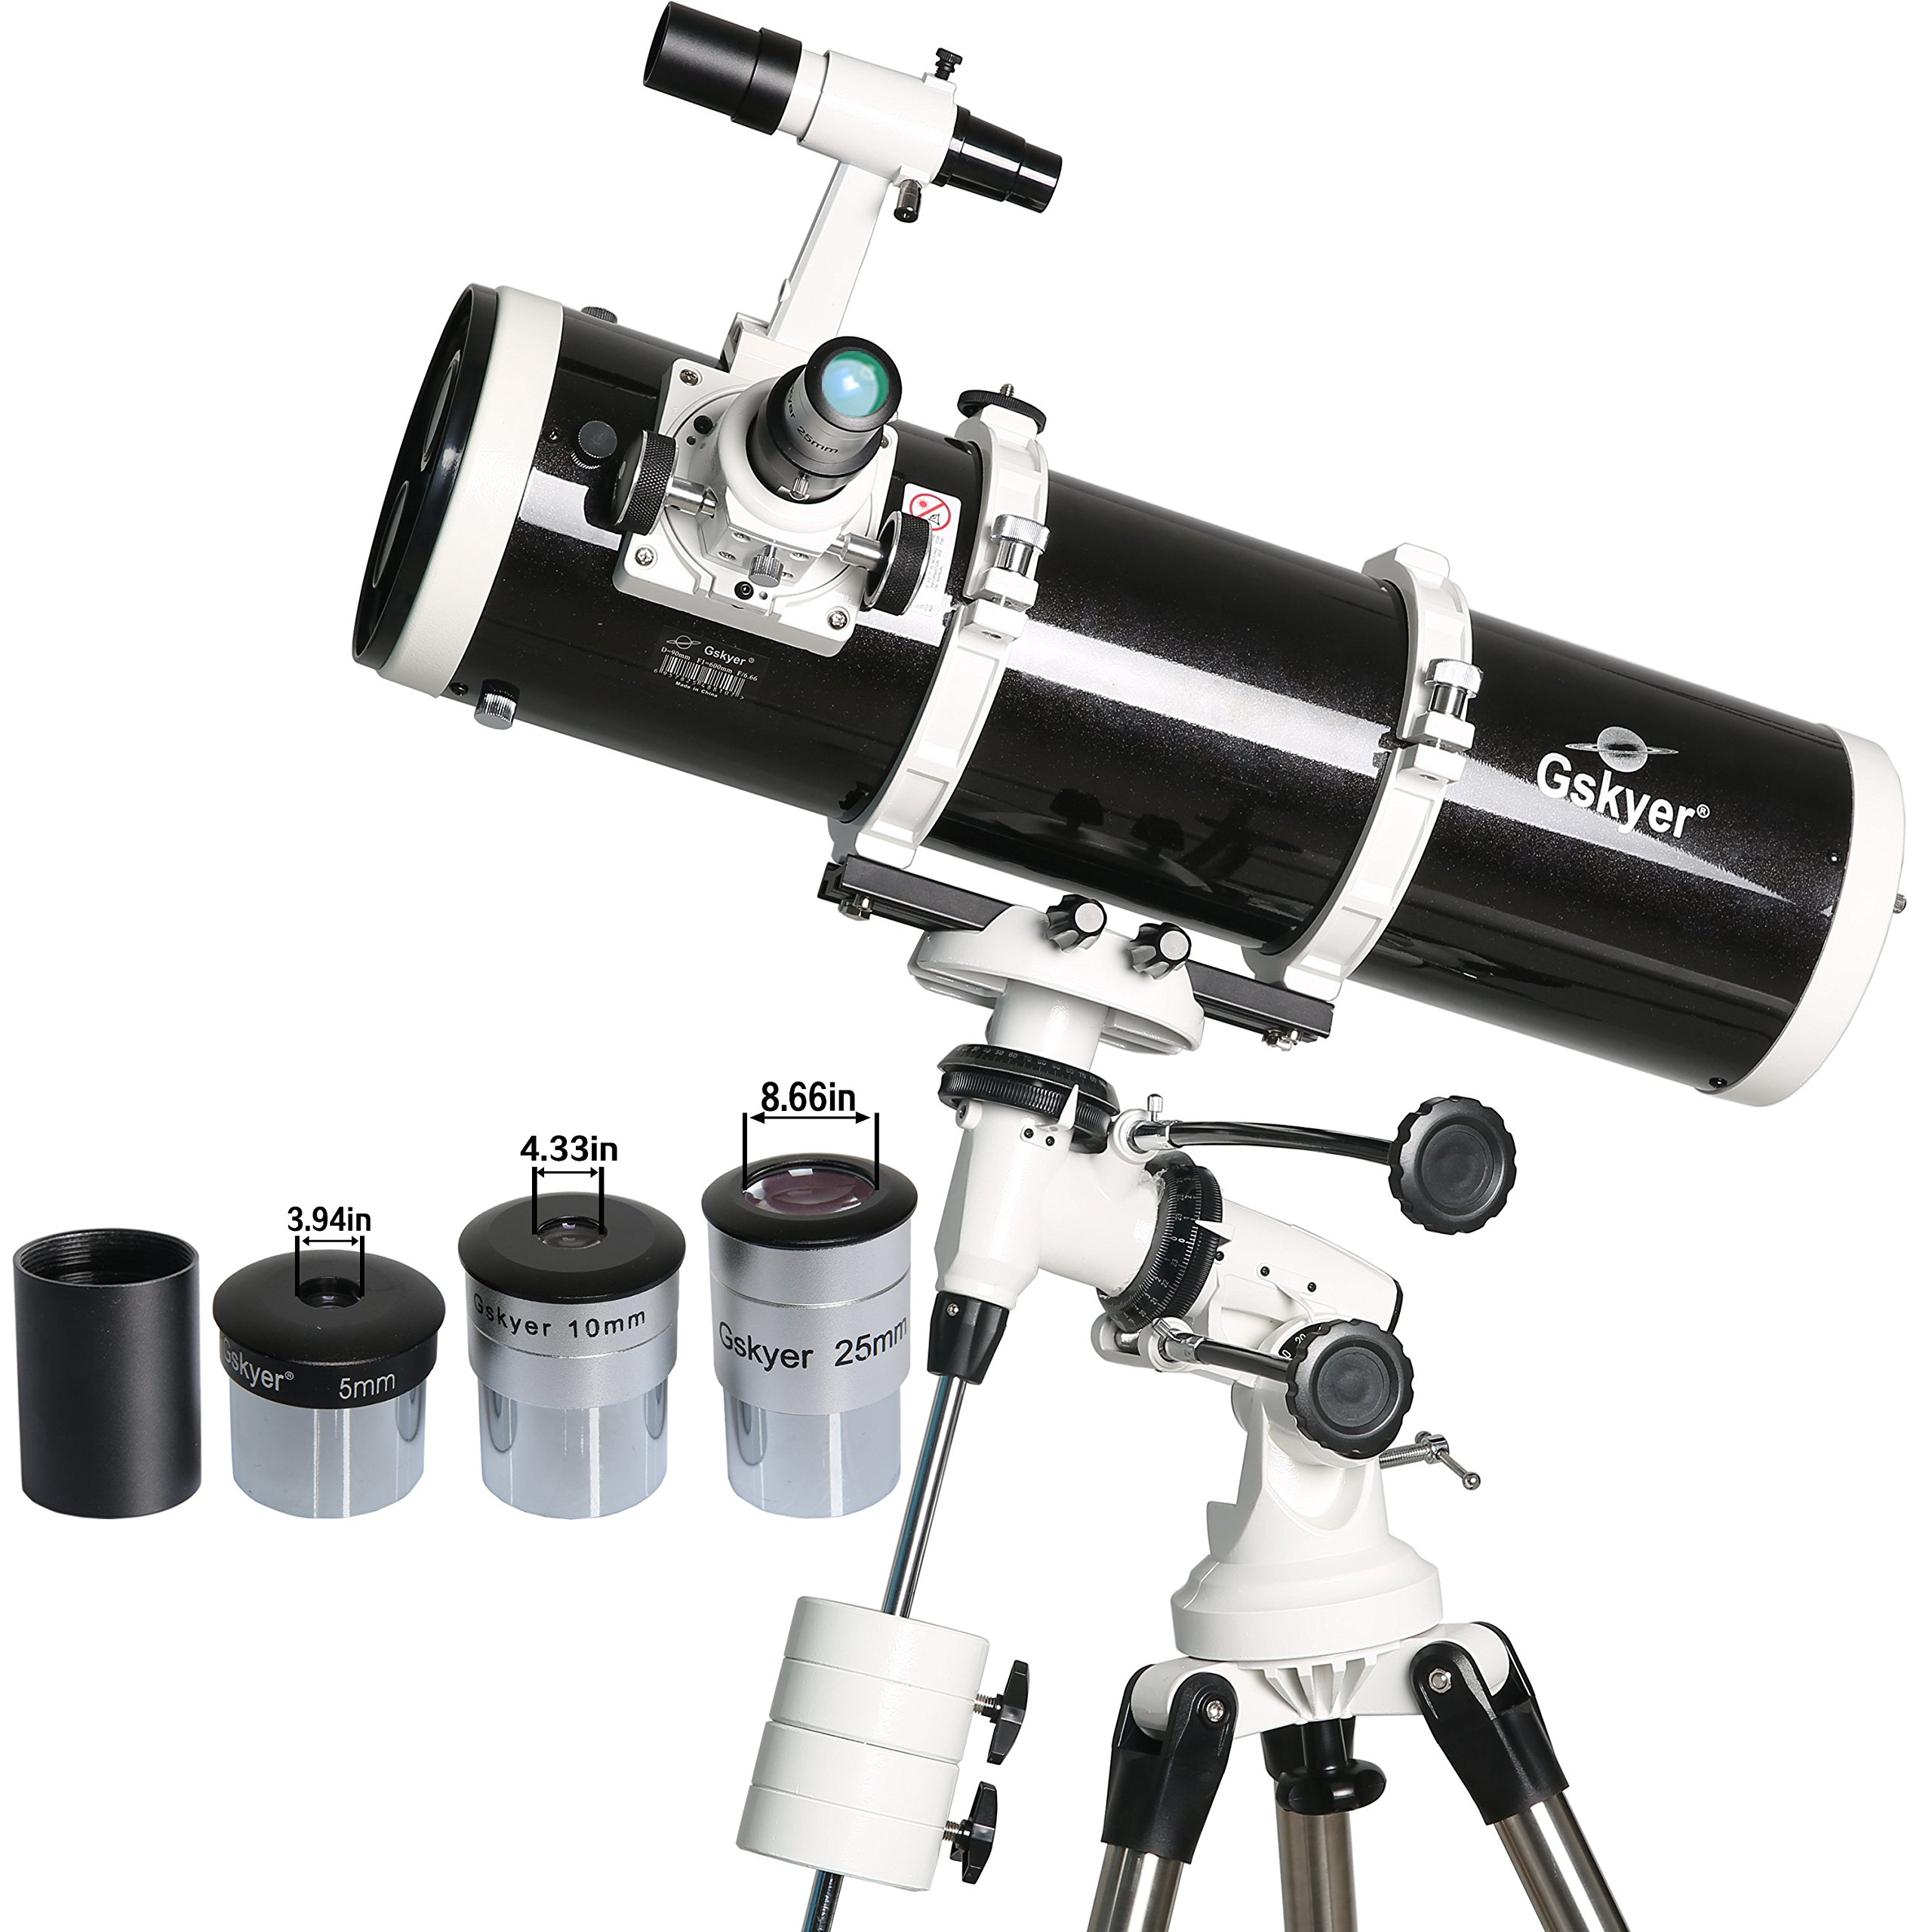 Gskyer Telescope, 130EQ Professional Astronomical Reflector Telescope, German Technology Scope by Gskyer